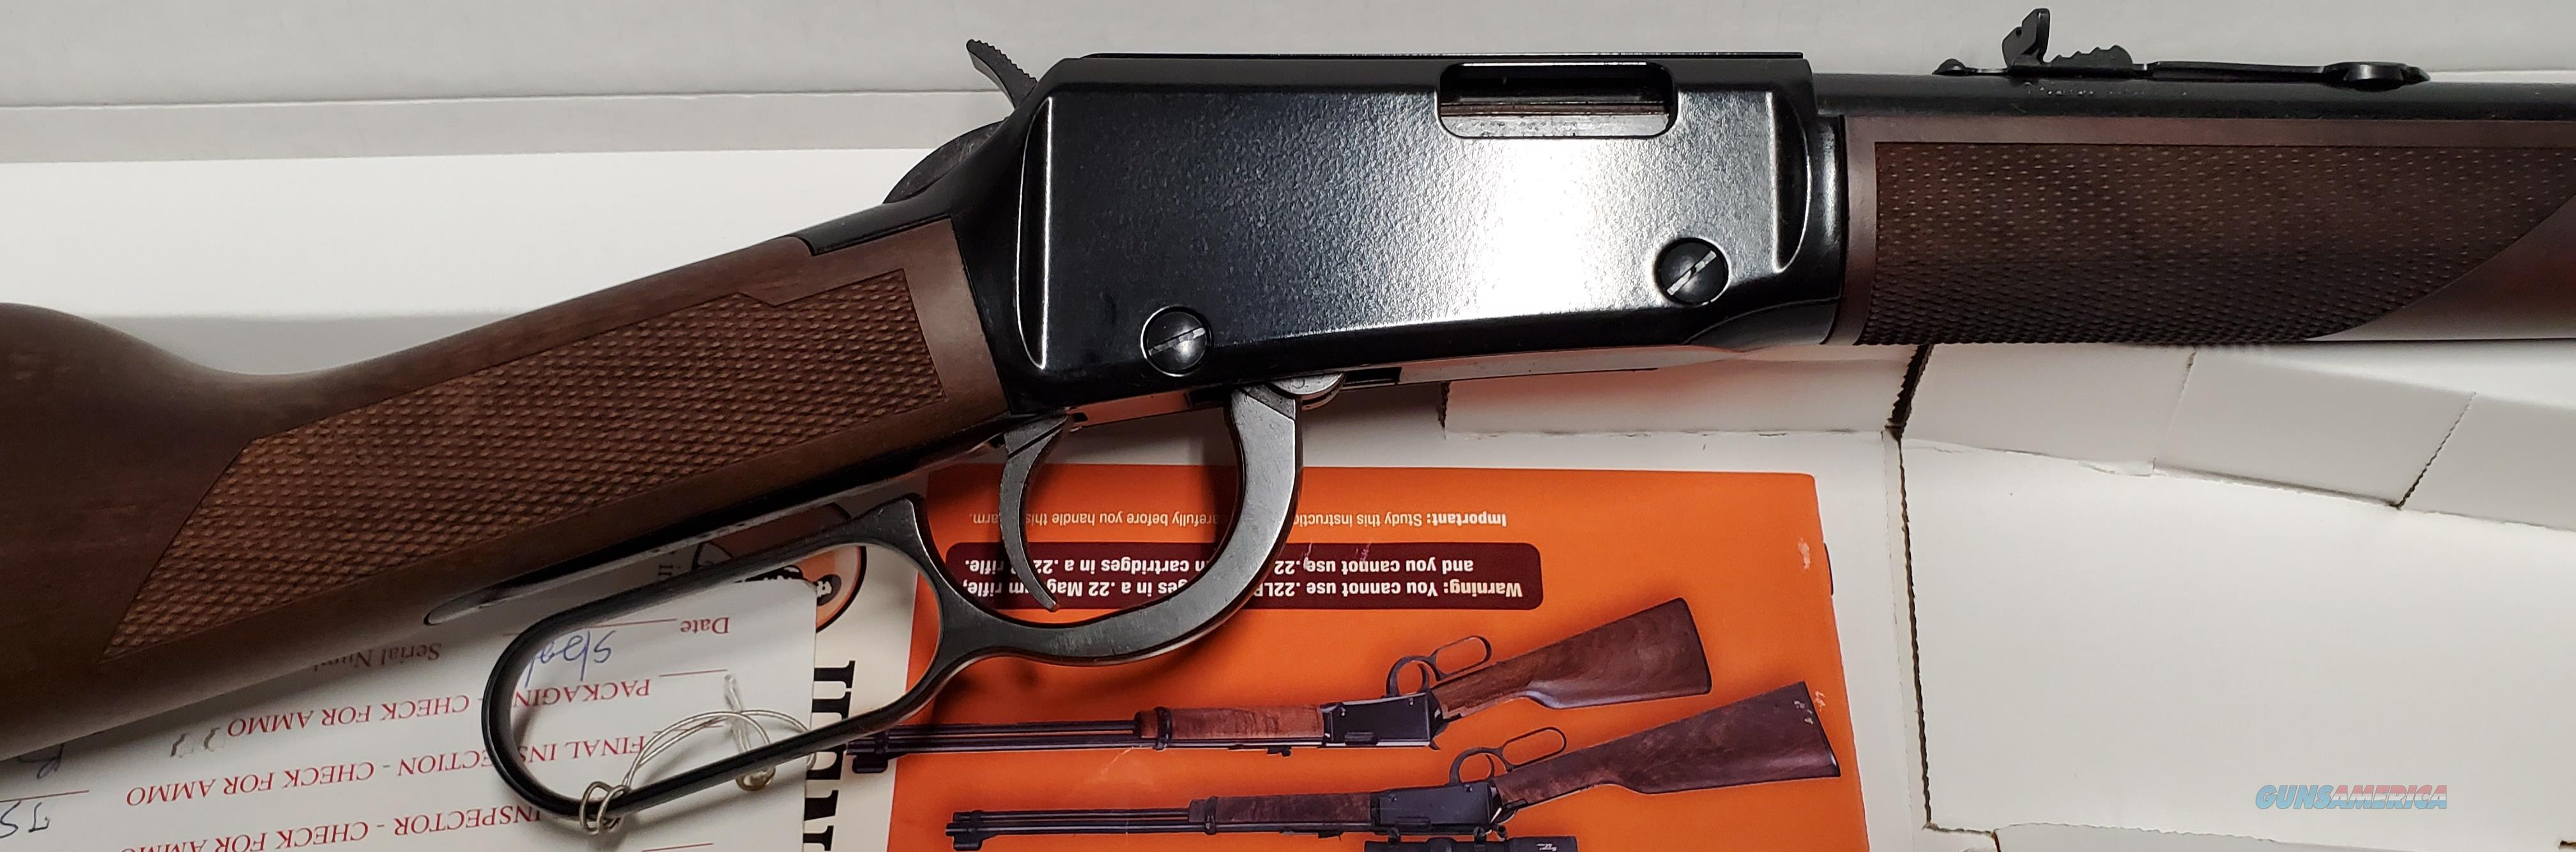 Henry Classic Lever Action 22 Magnum  New!  LAYAWAY OPTION  H001M  Guns > Rifles > Henry Rifle Company